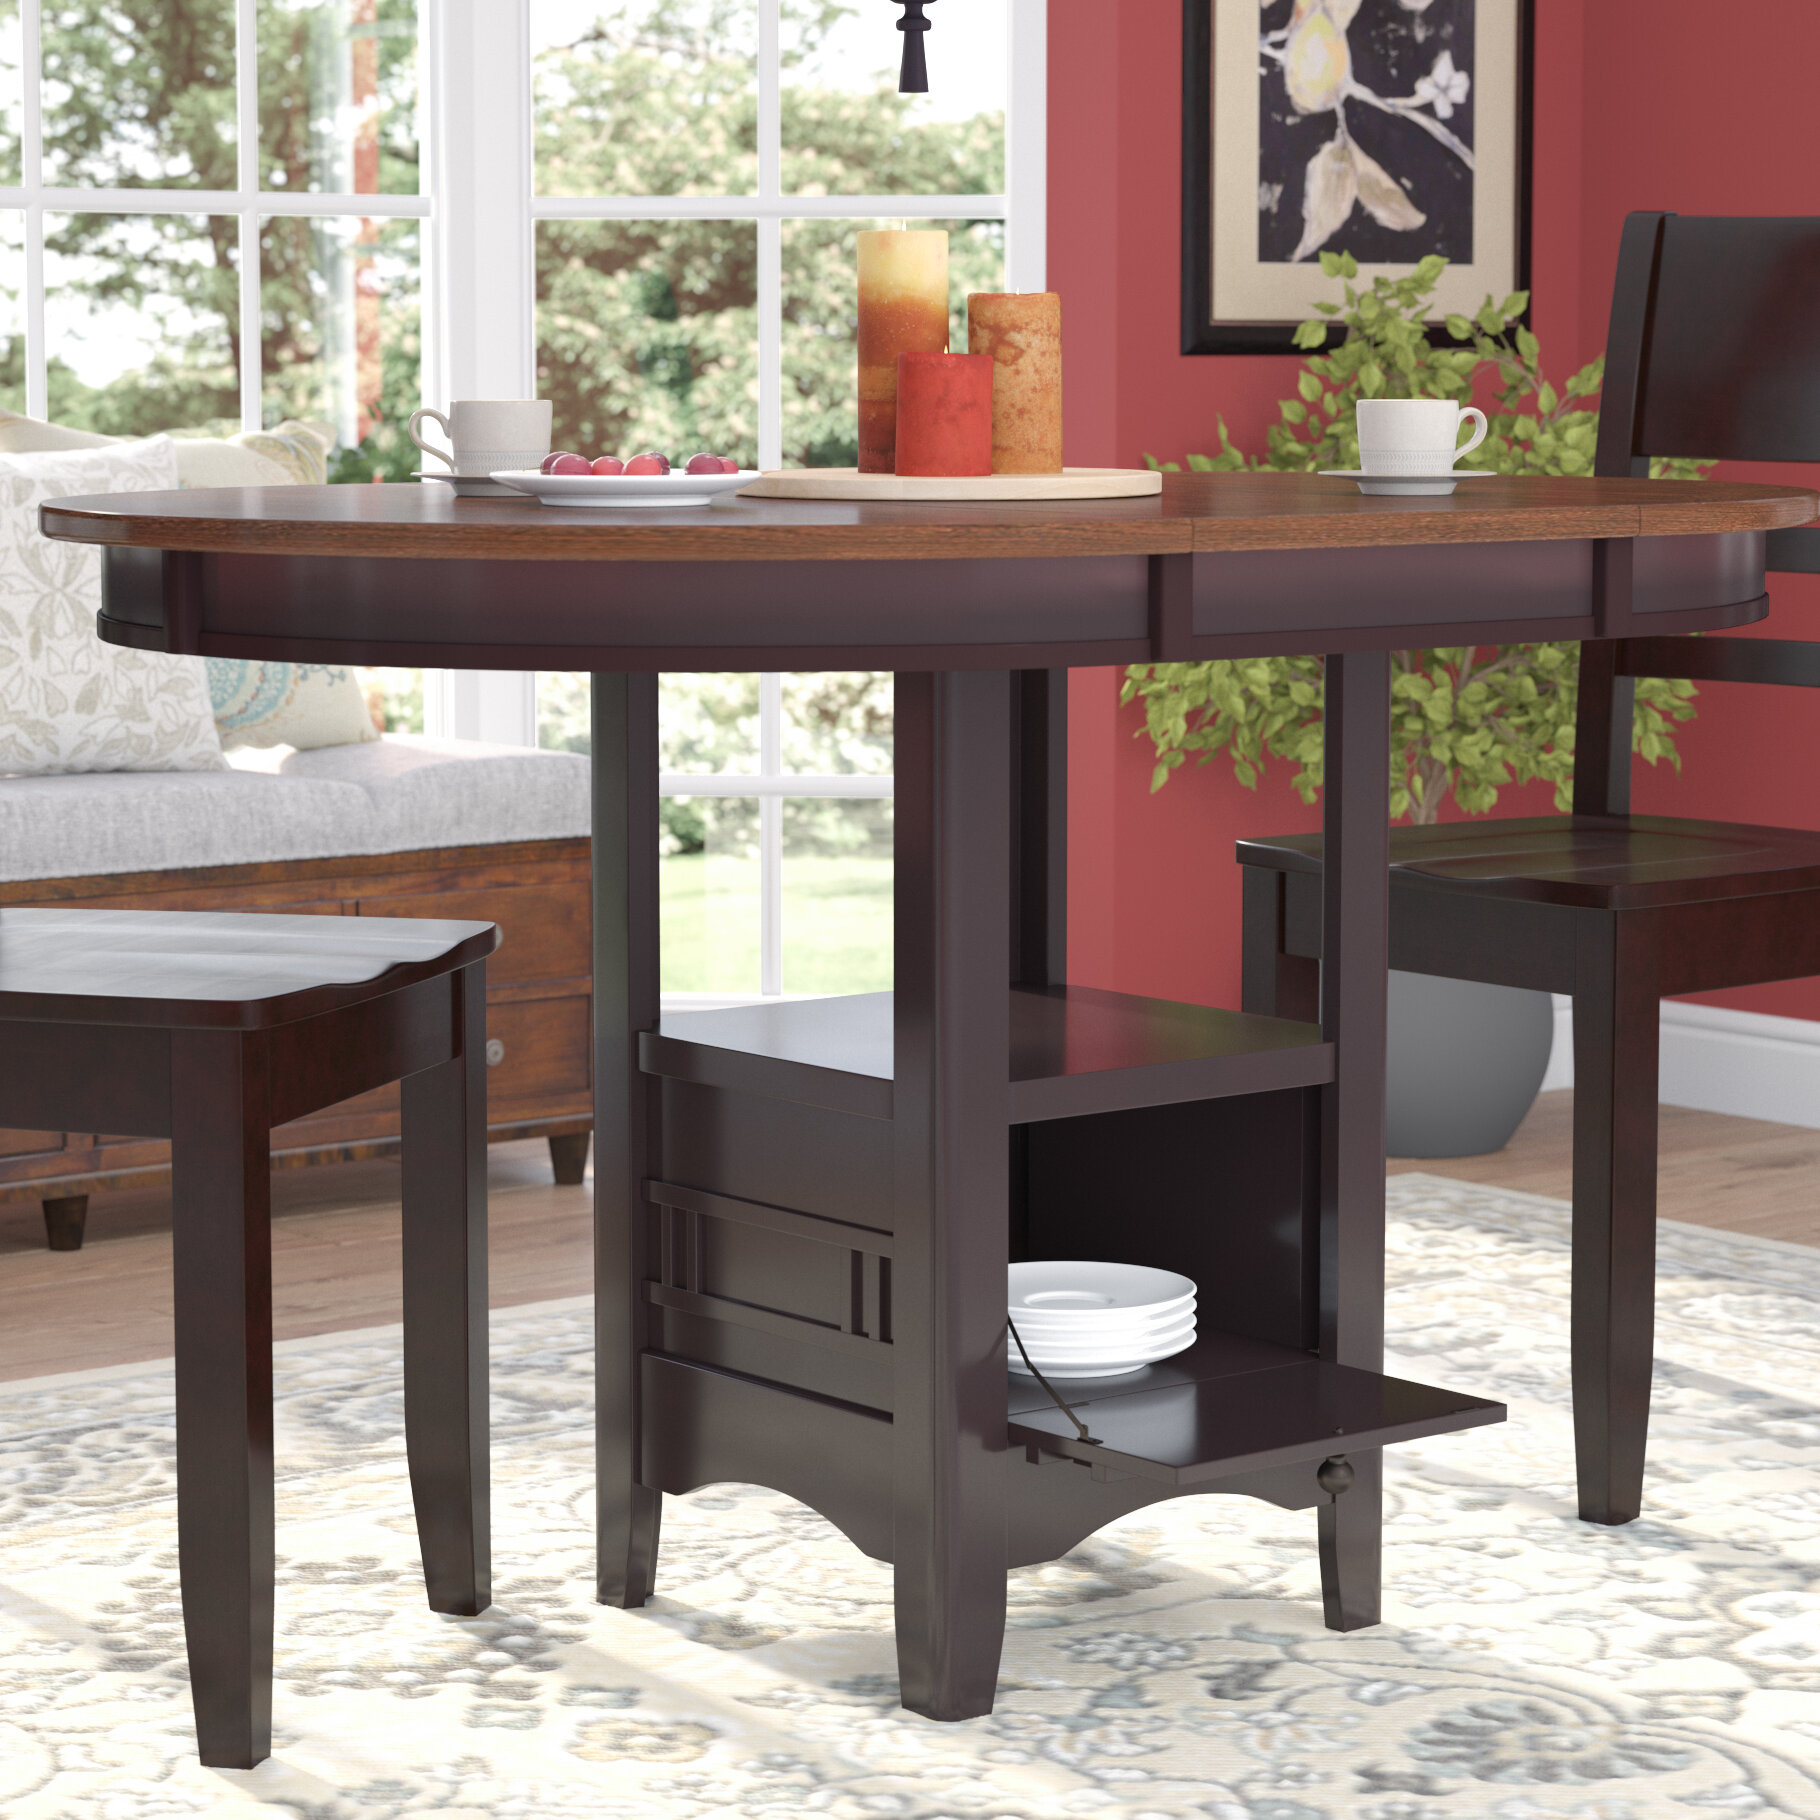 Darby Home Co Sinkler Counter Height Drop Leaf Dining Table Reviews